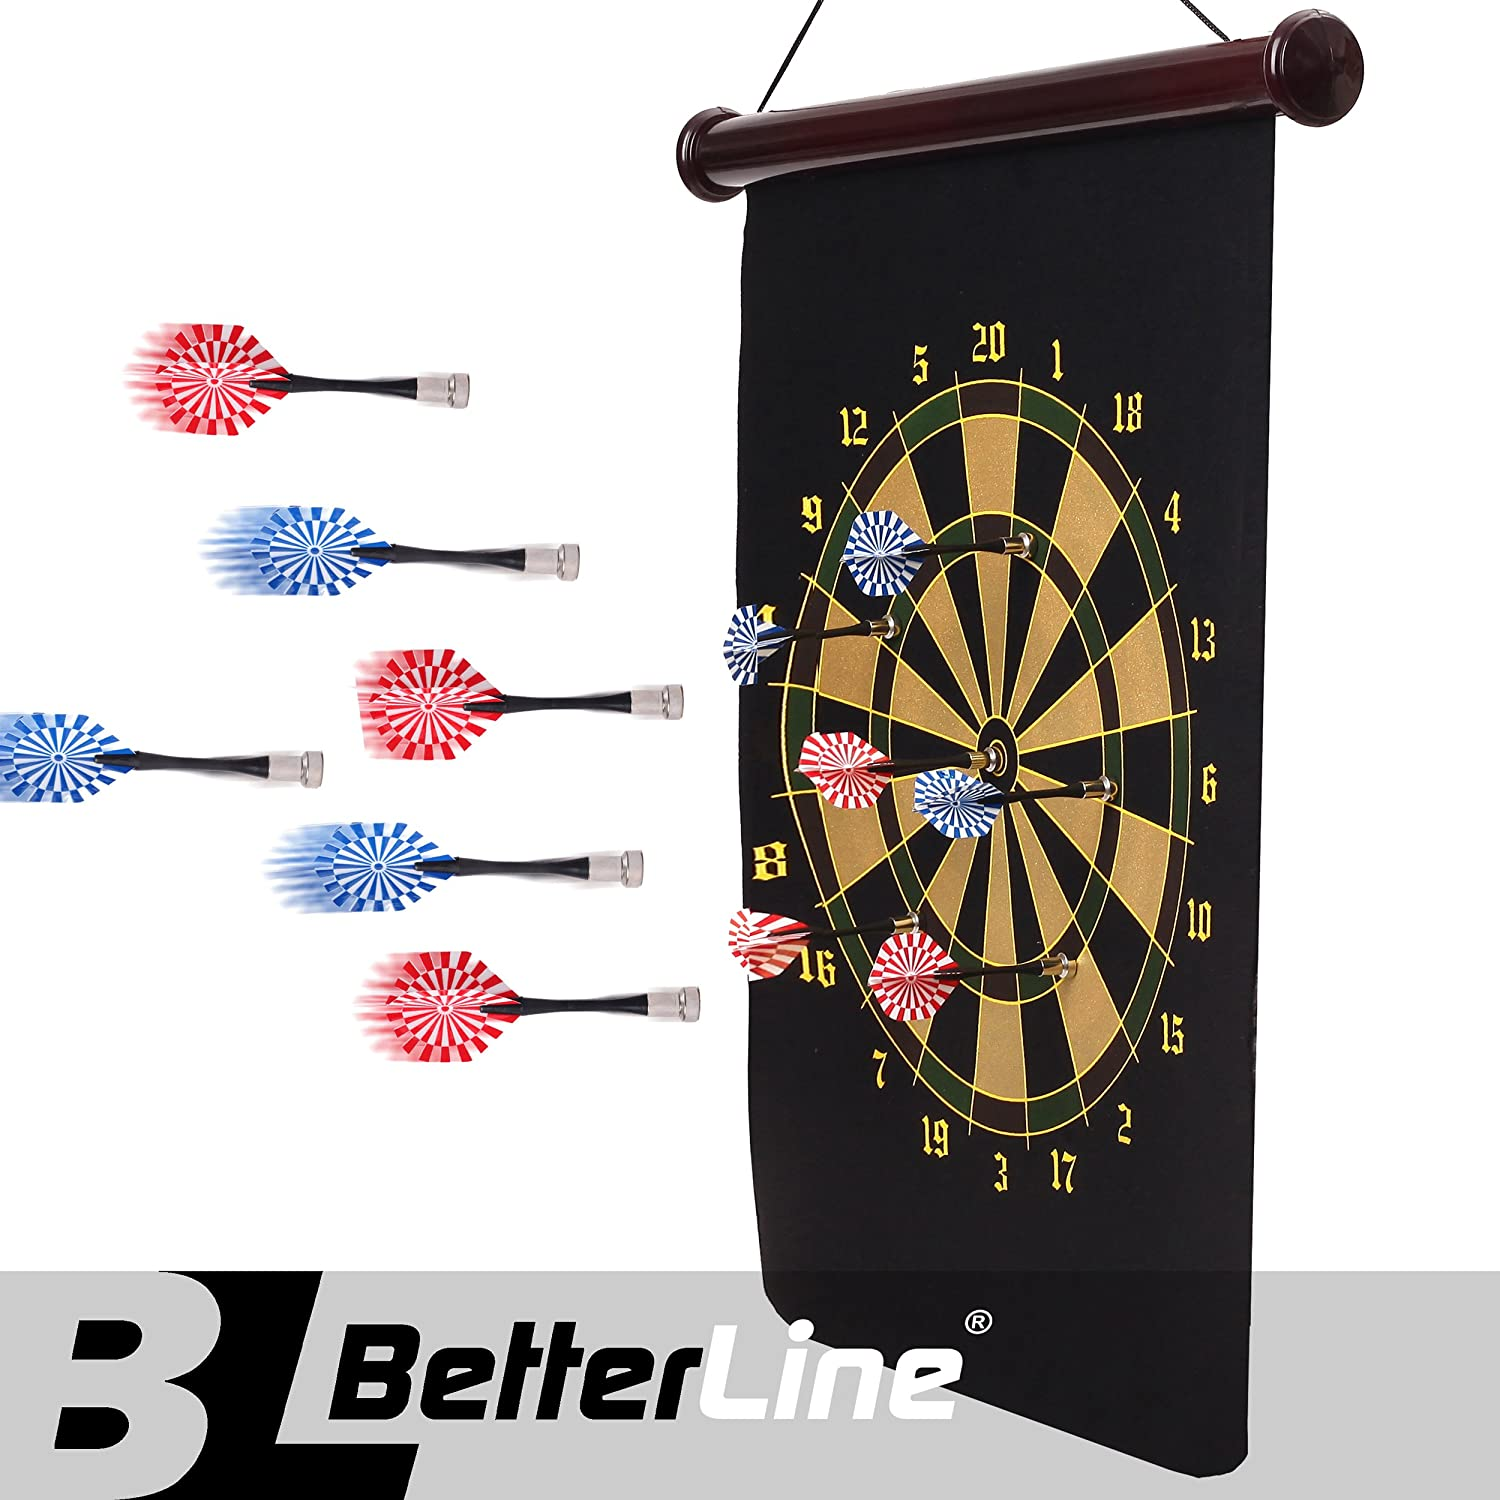 BetterLine Roll-up Magnetic Dartboard